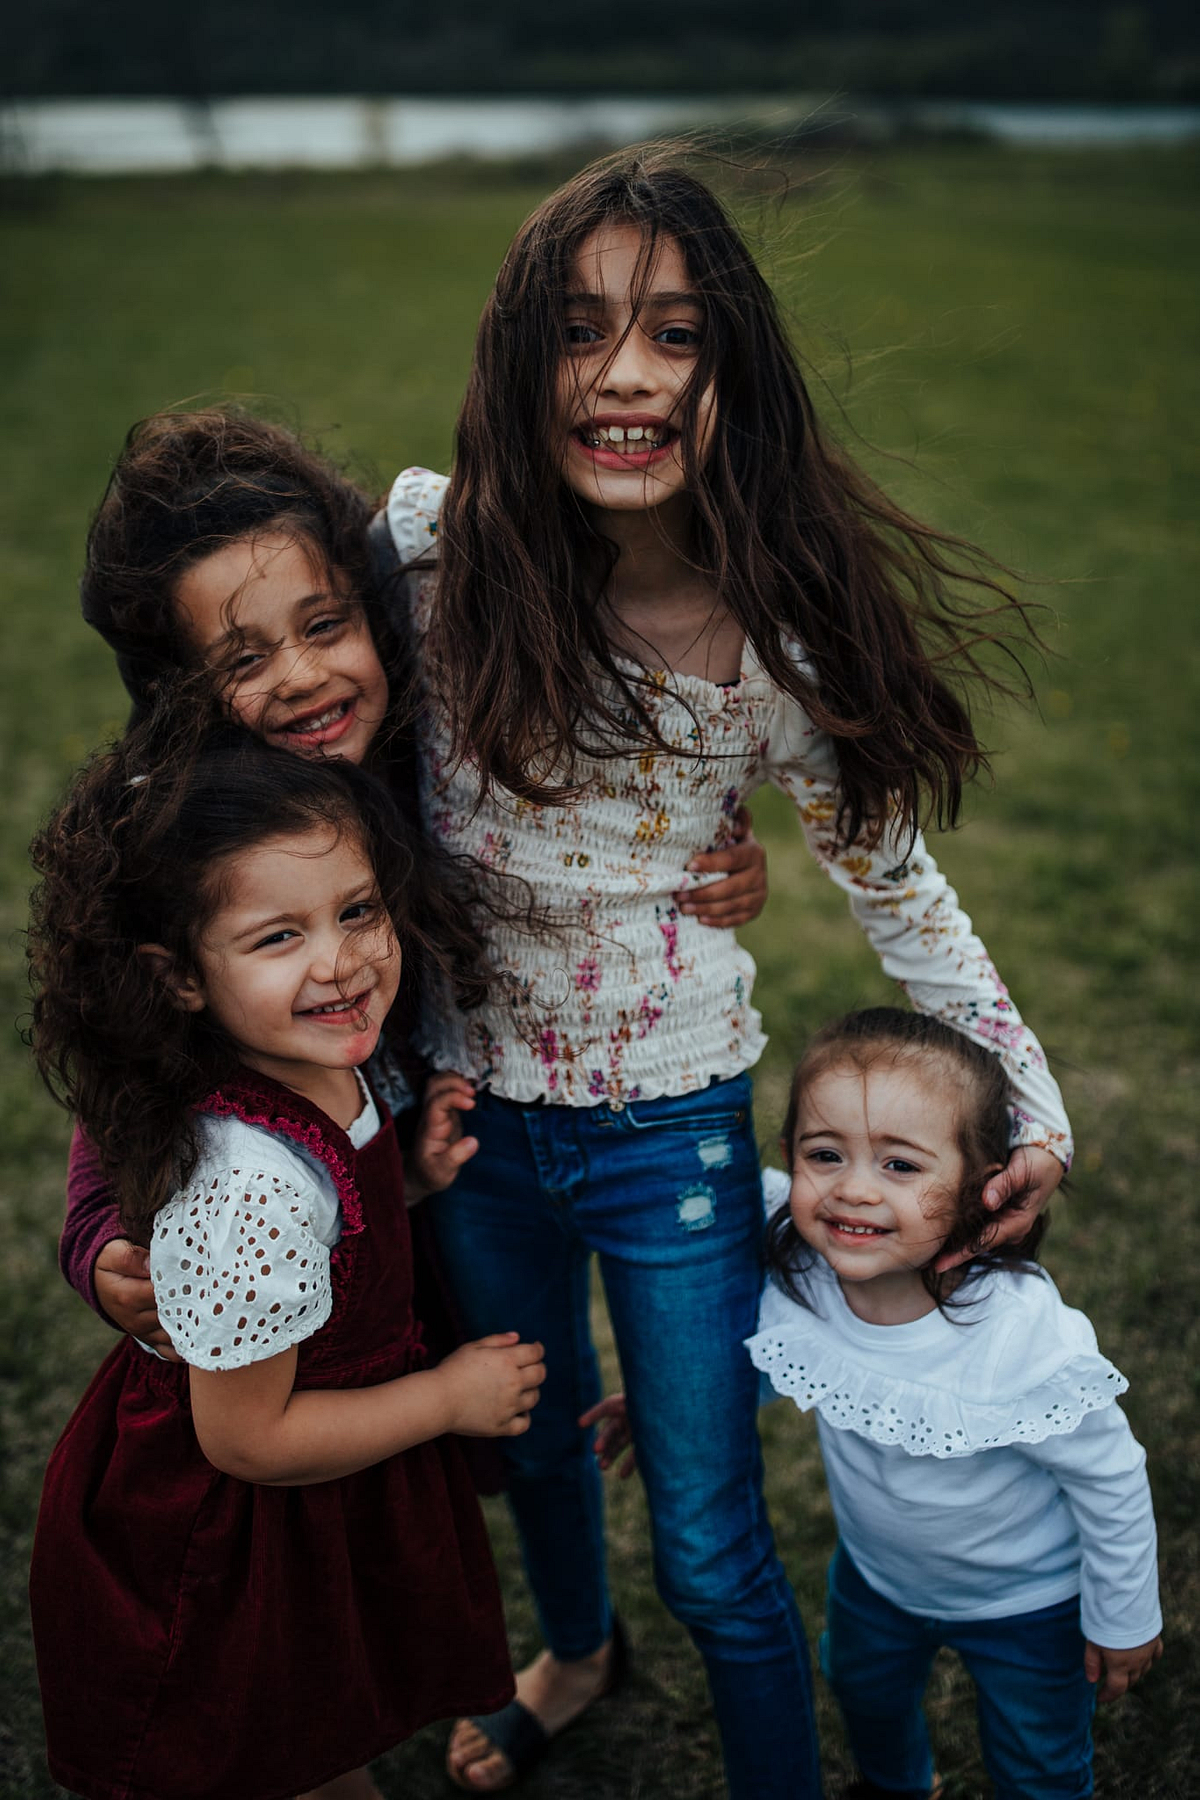 Four young girls stand together smiling as their hair whips in the wind.